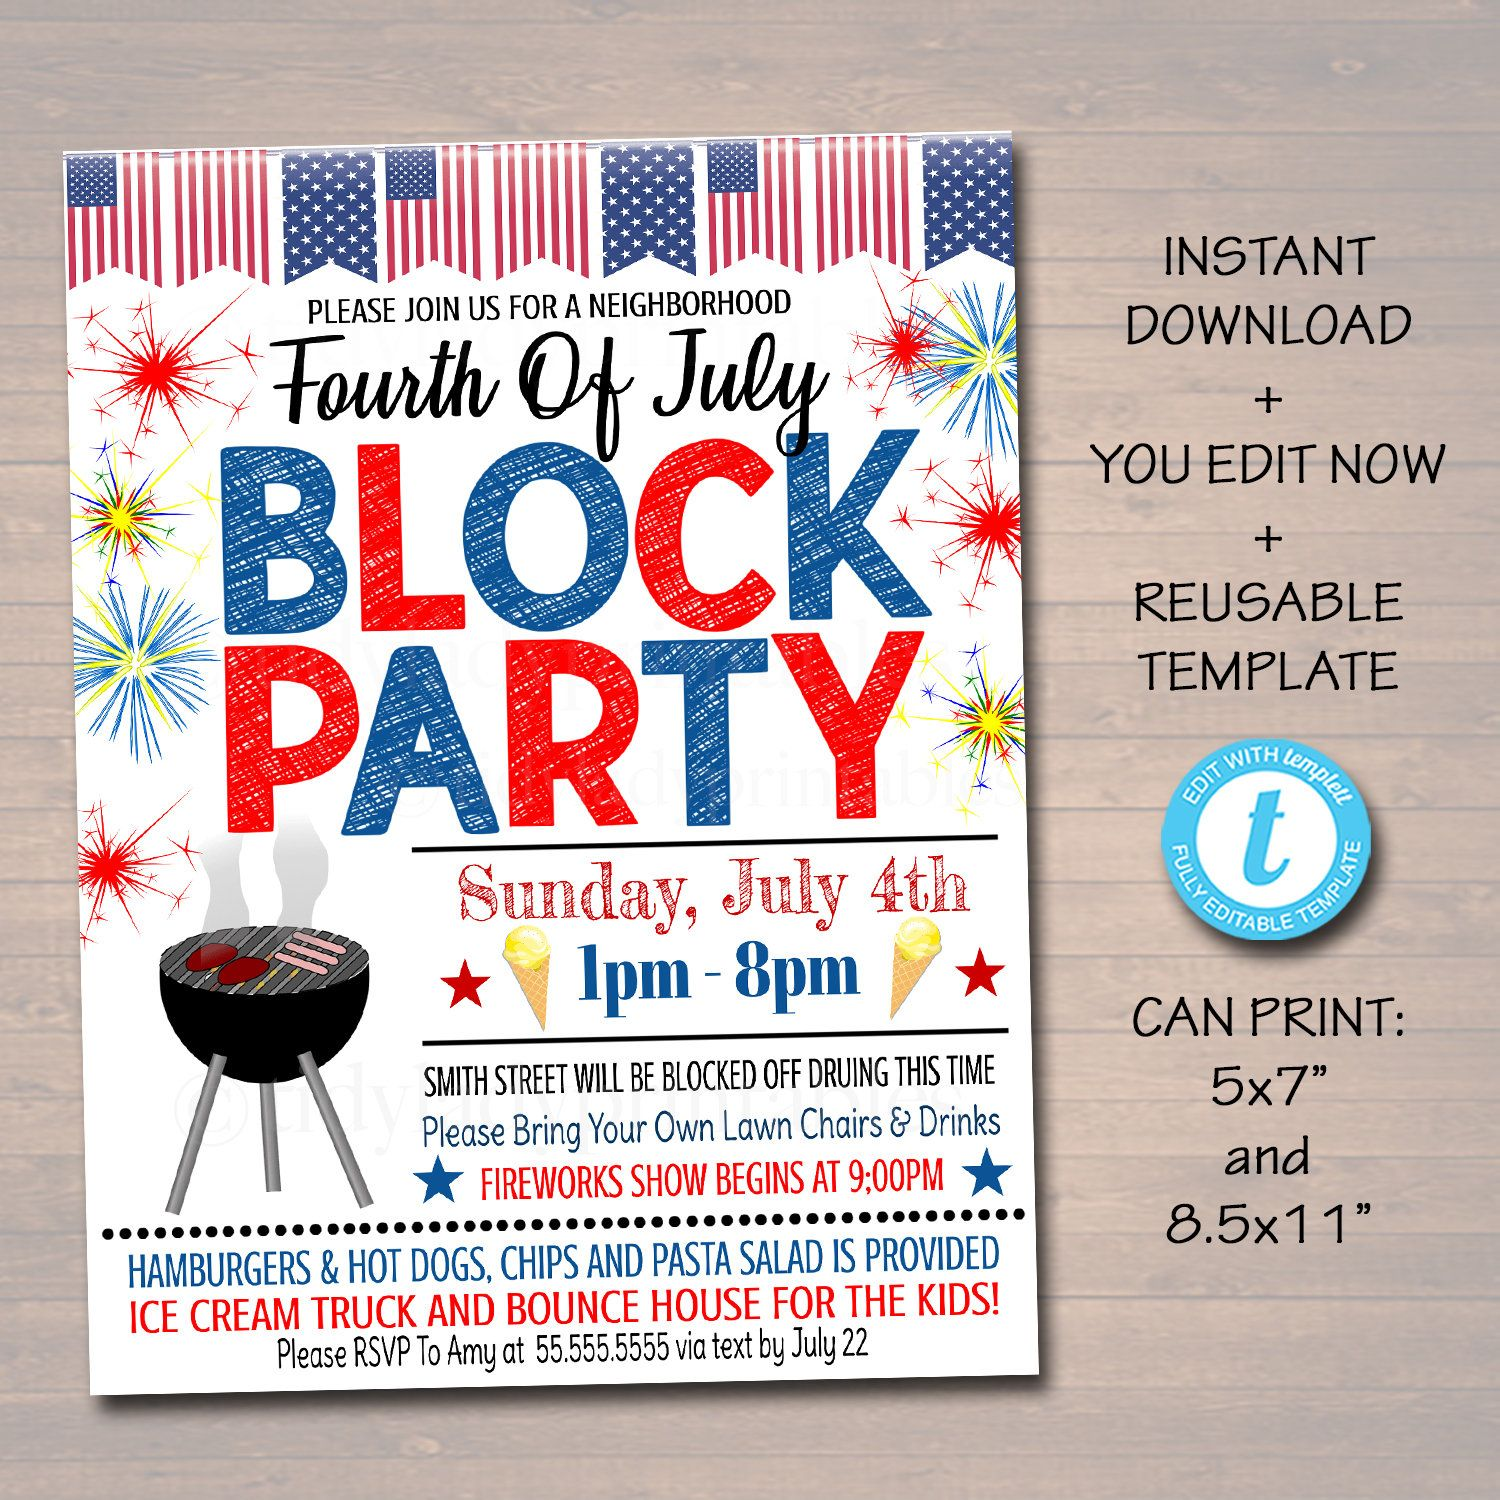 Editable Patriotic Neighborhood Block Party Invite Printable Etsy Block Party Invitations Neighborhood Block Party Block Party